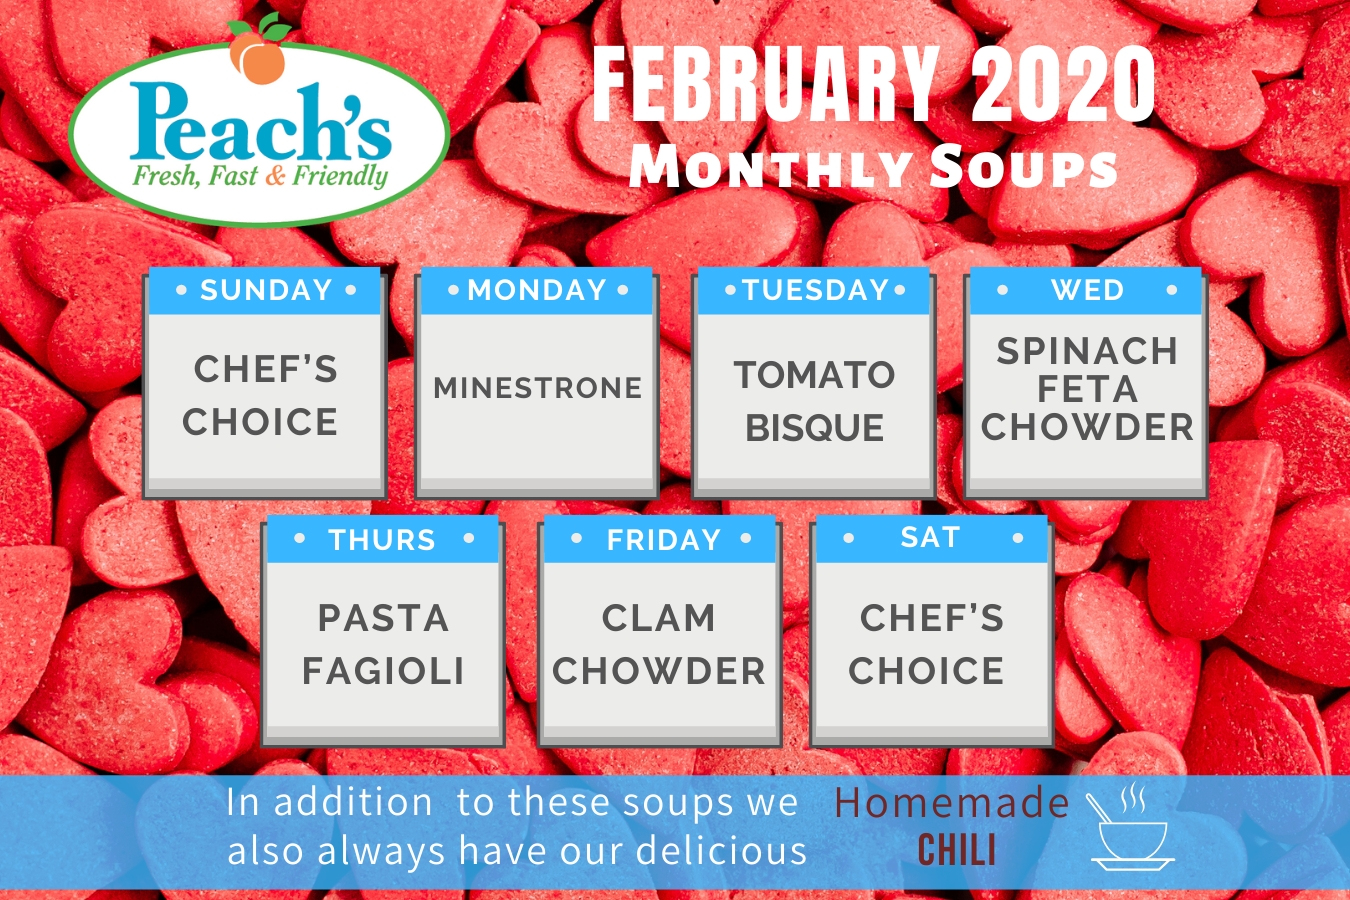 feb_soups_of_the_month.jpg